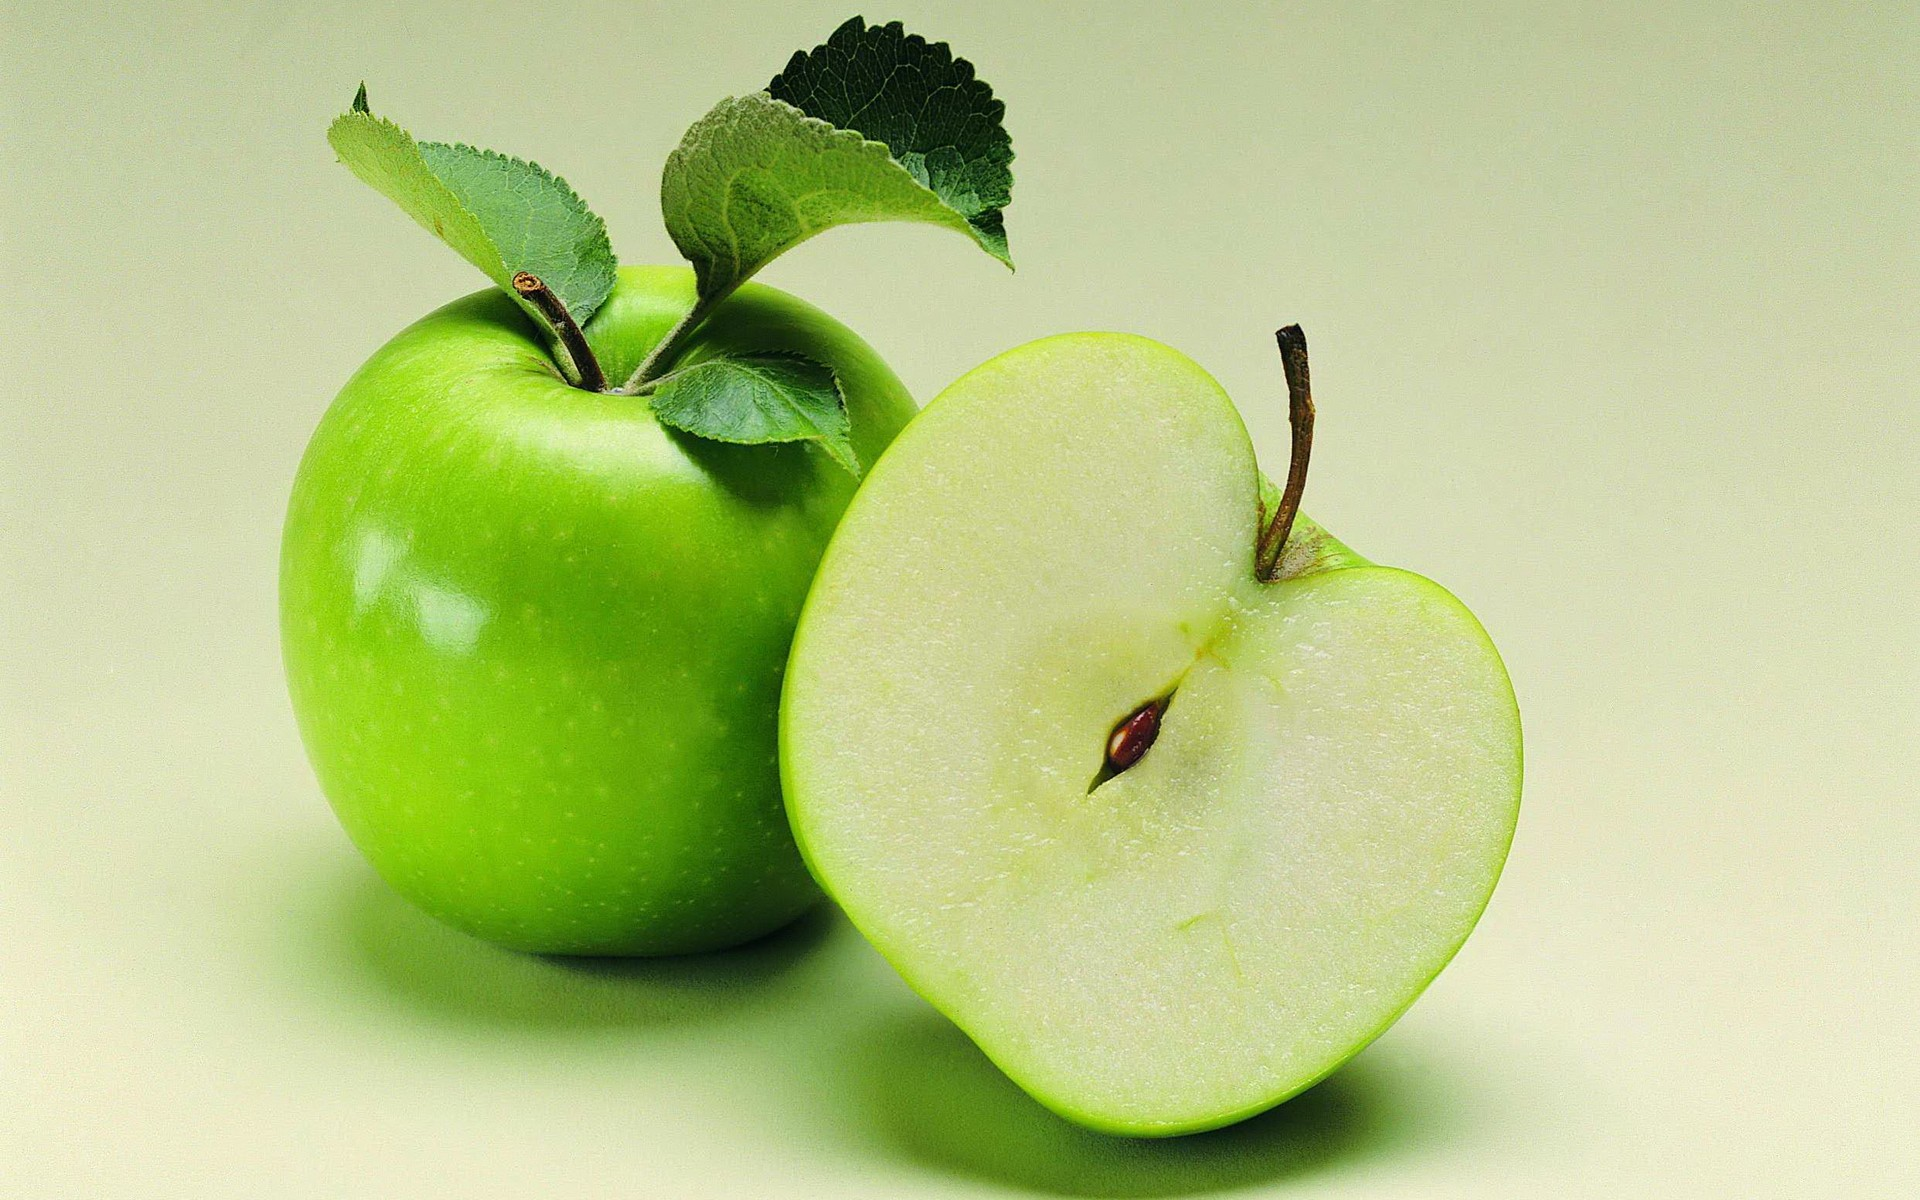 free-green-apple-wallpaper-34617-35398-hd-wallpapers